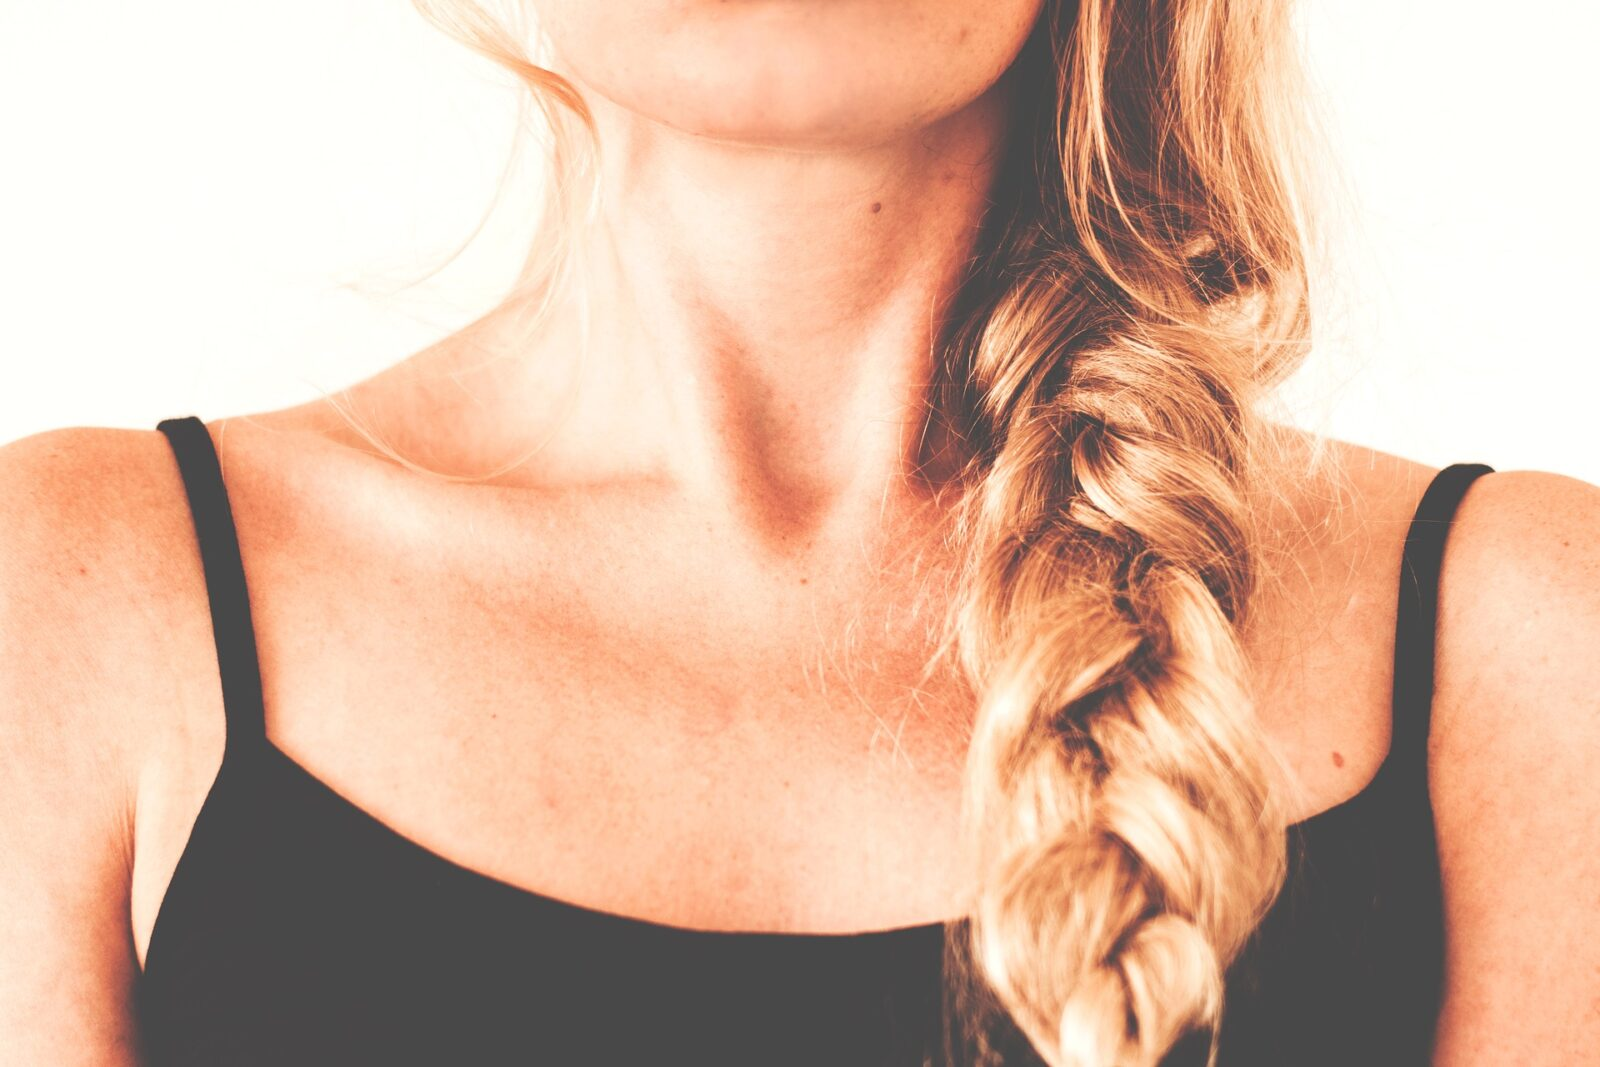 blonde-hair-in-a-braid-beauty-tips-online-entertainments-saga-pixabay